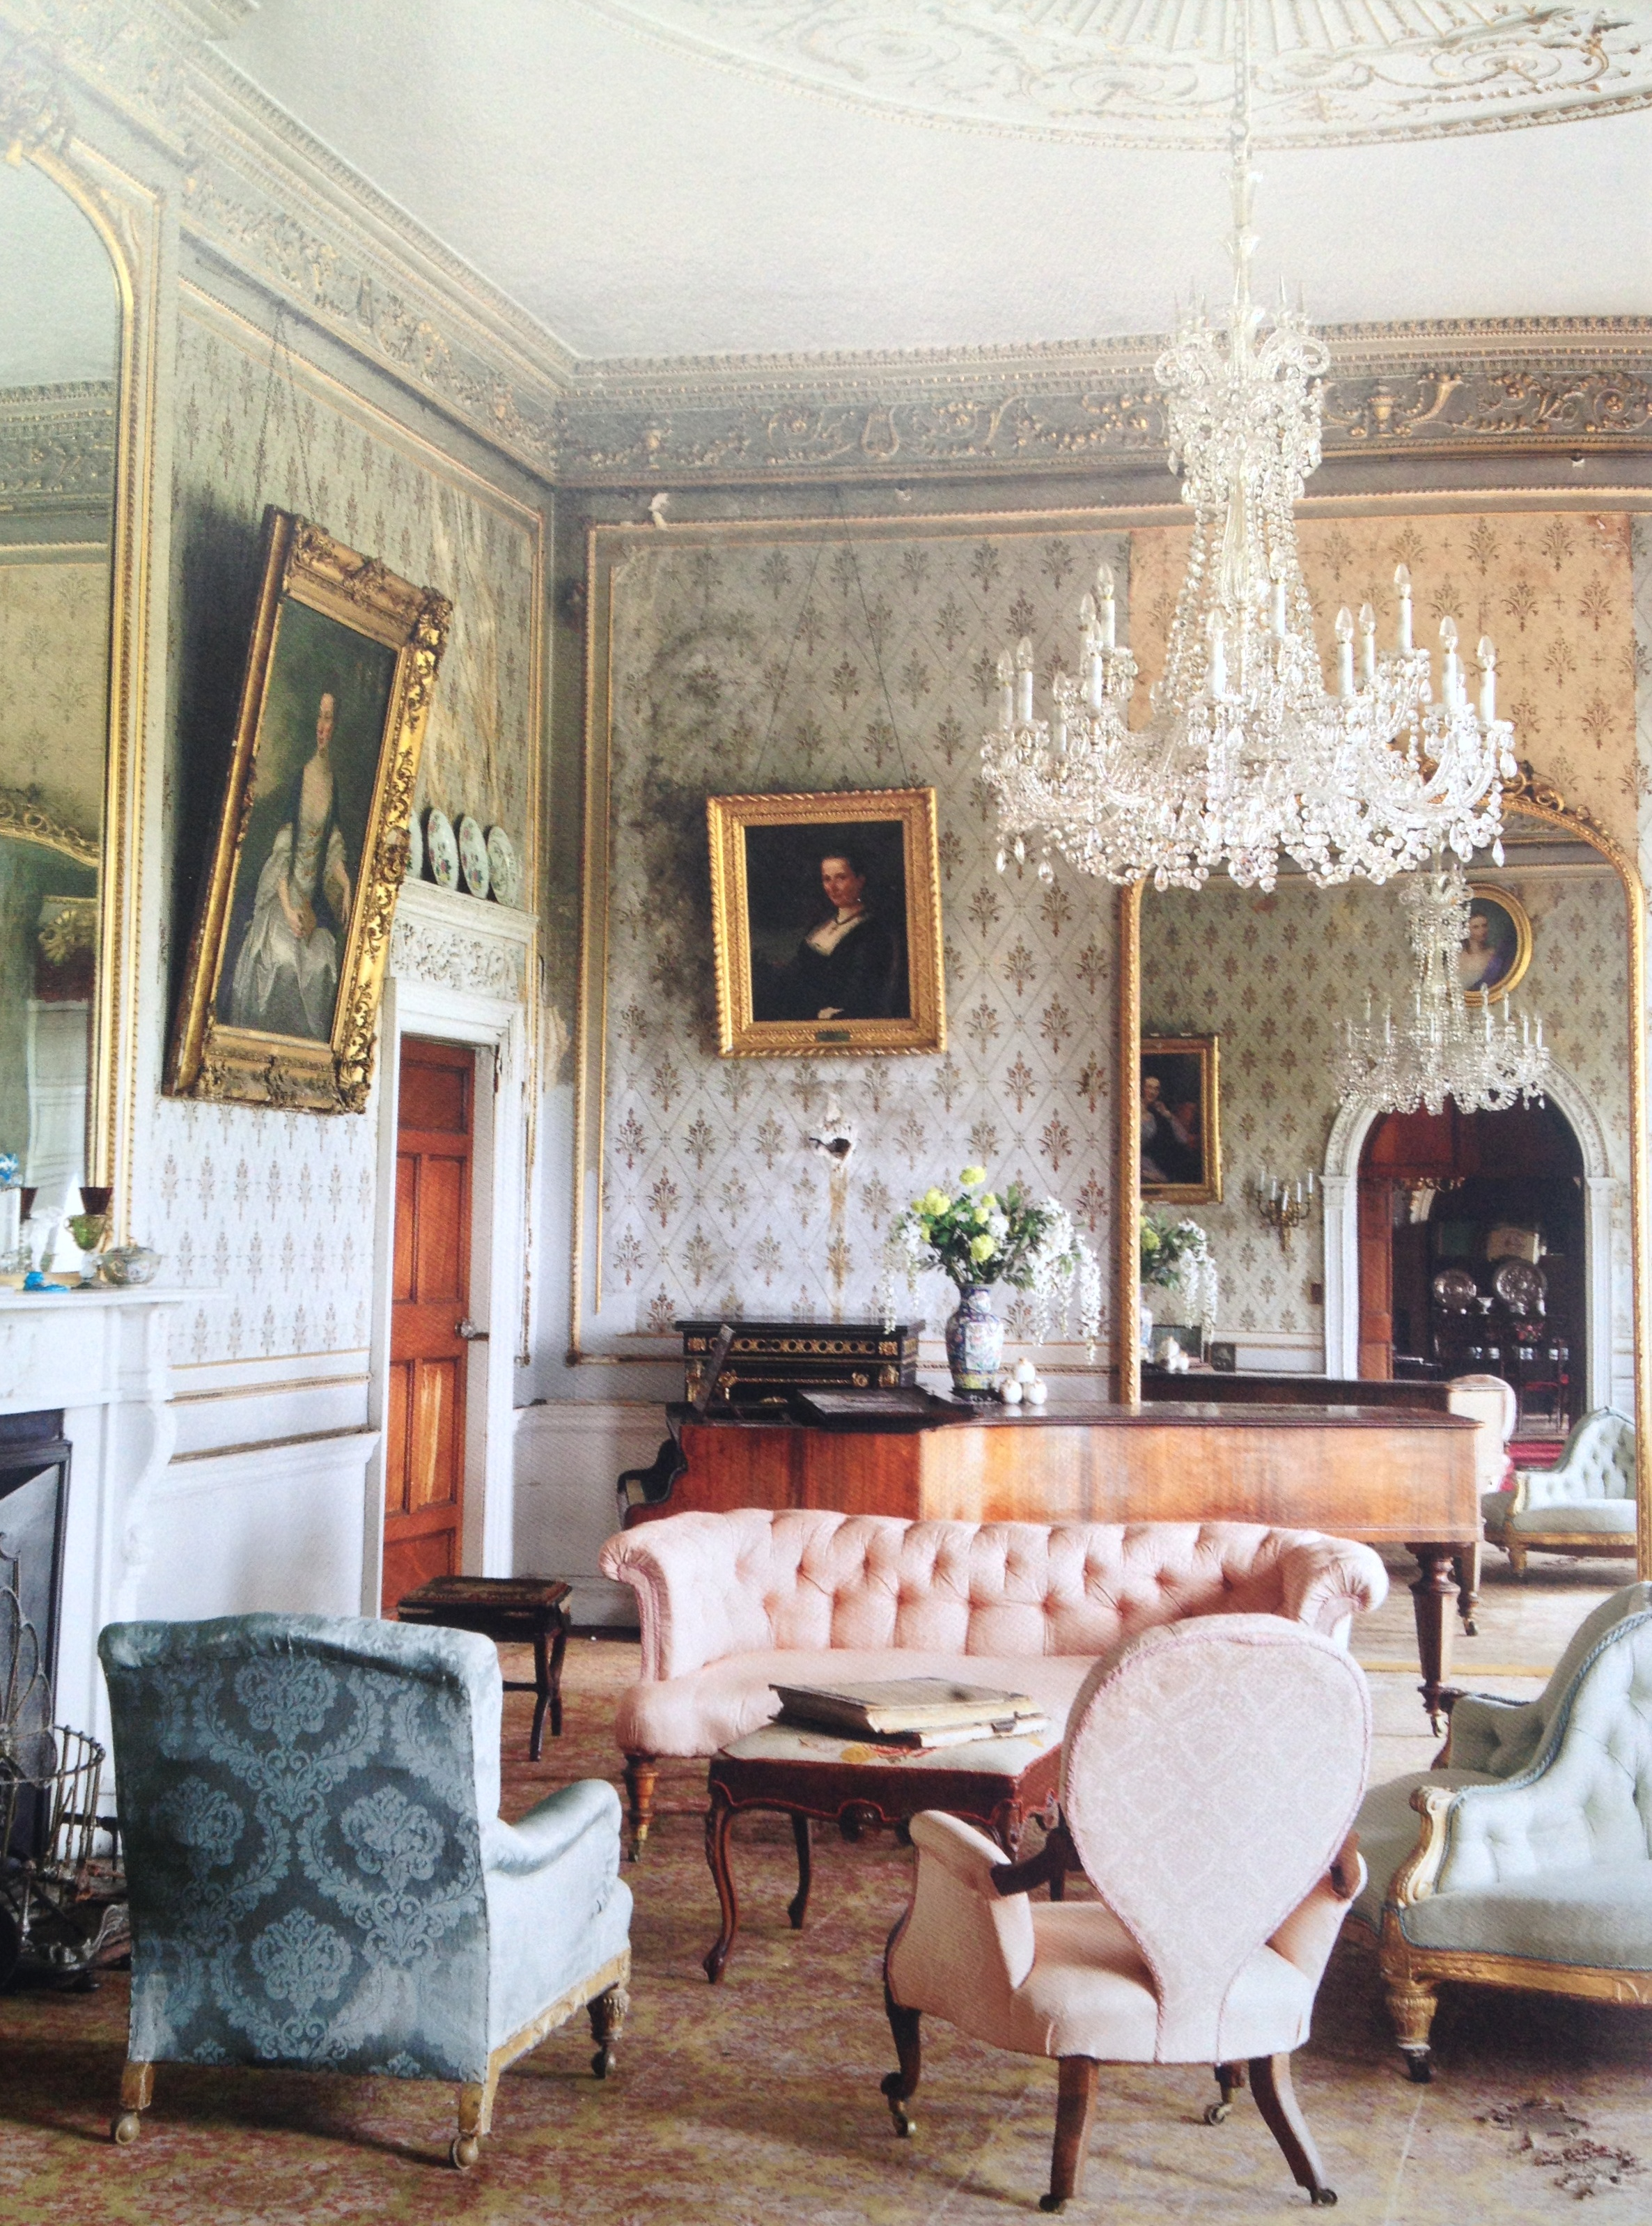 Nice irish country house interior faded glory http for Nice home interior